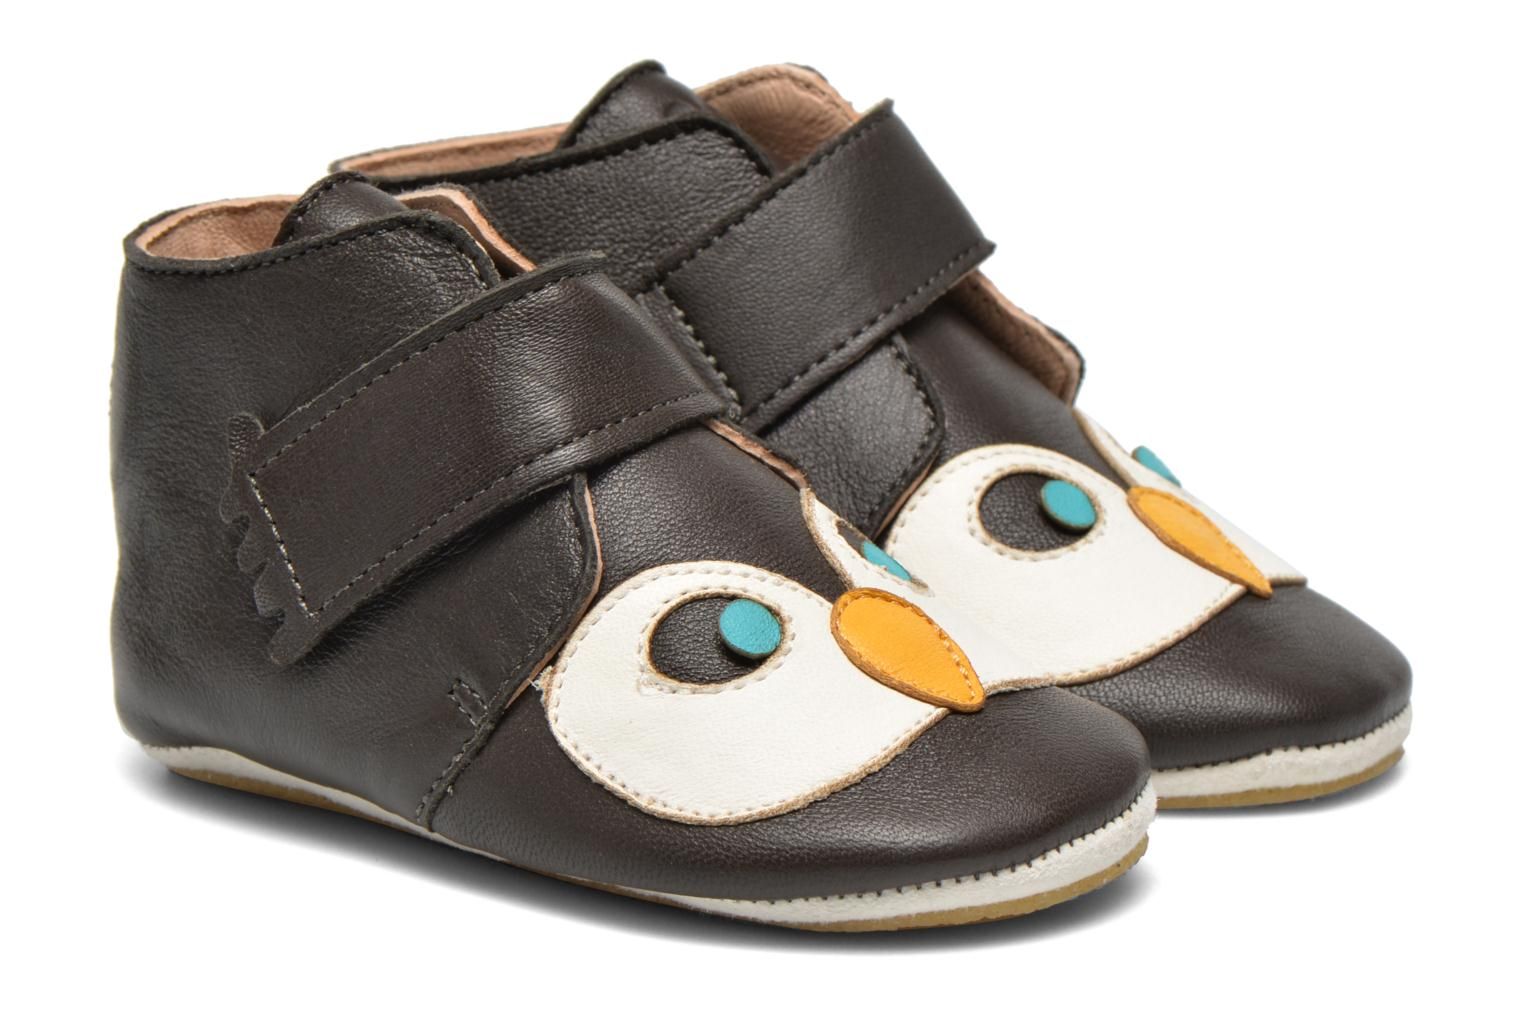 Pantoffels Kiny Patin Pingouin by Easy Peasy